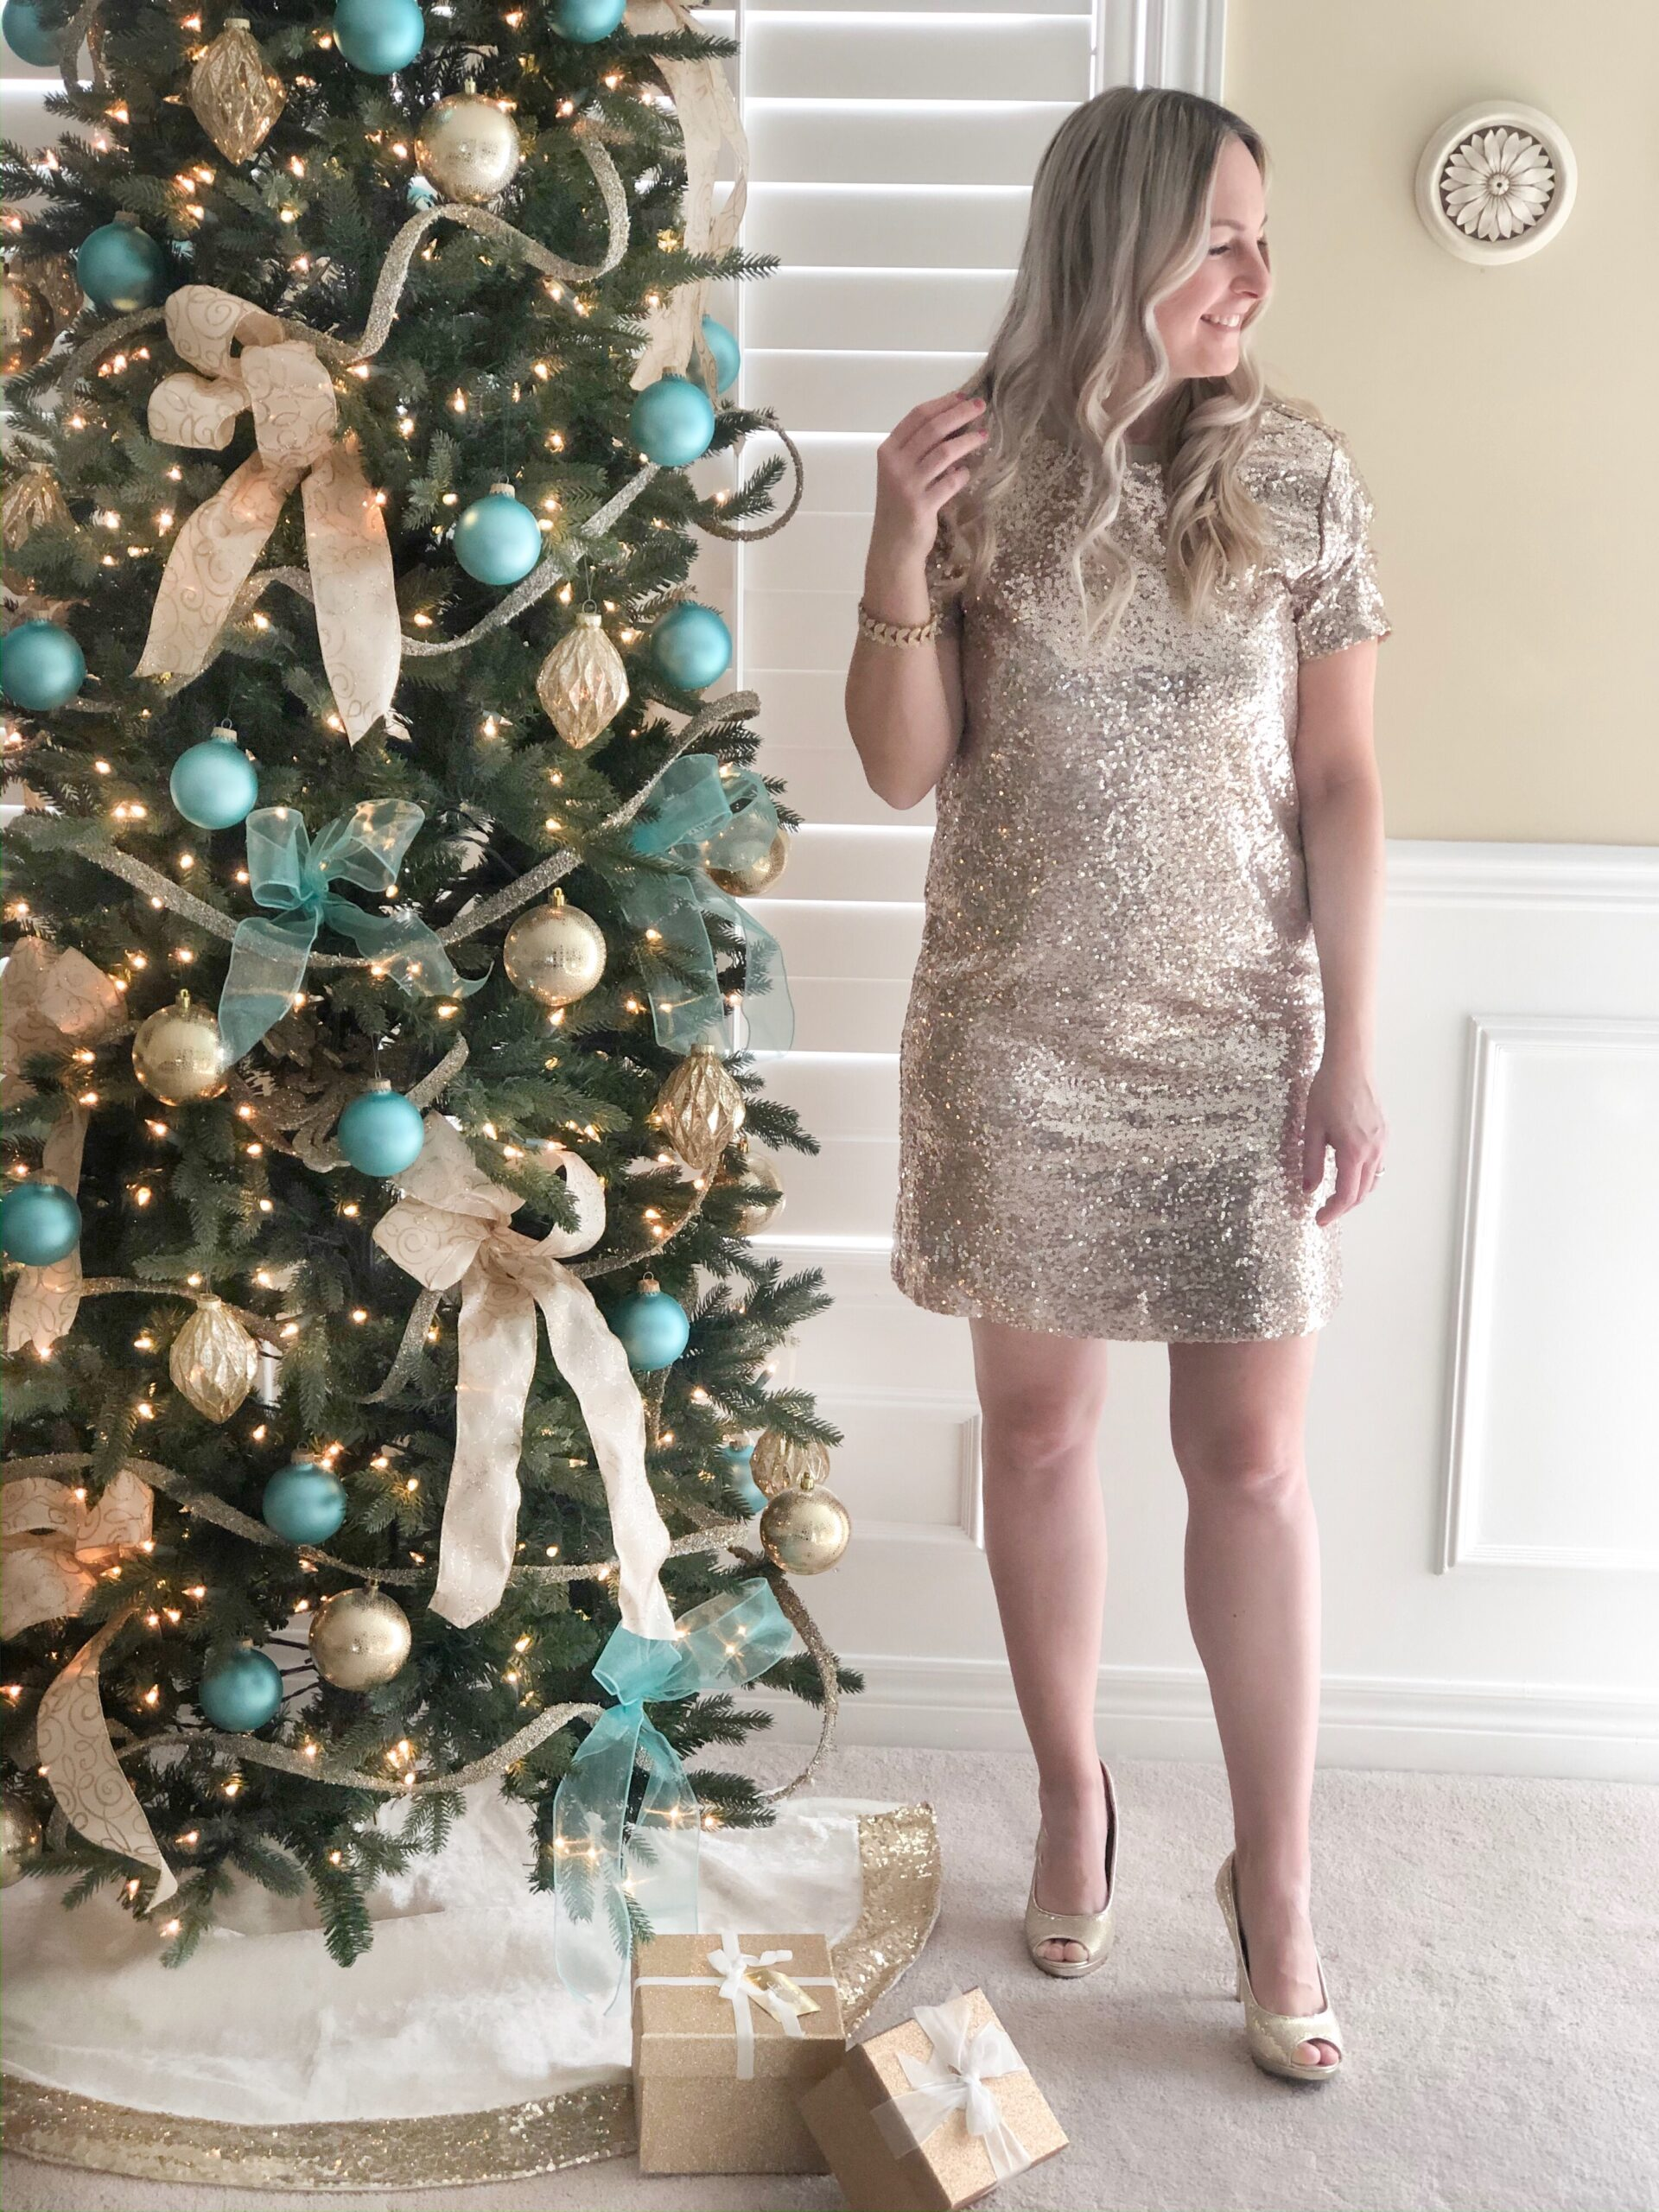 Gold Sparkly Dress for the holidays on Livin' Life with Style